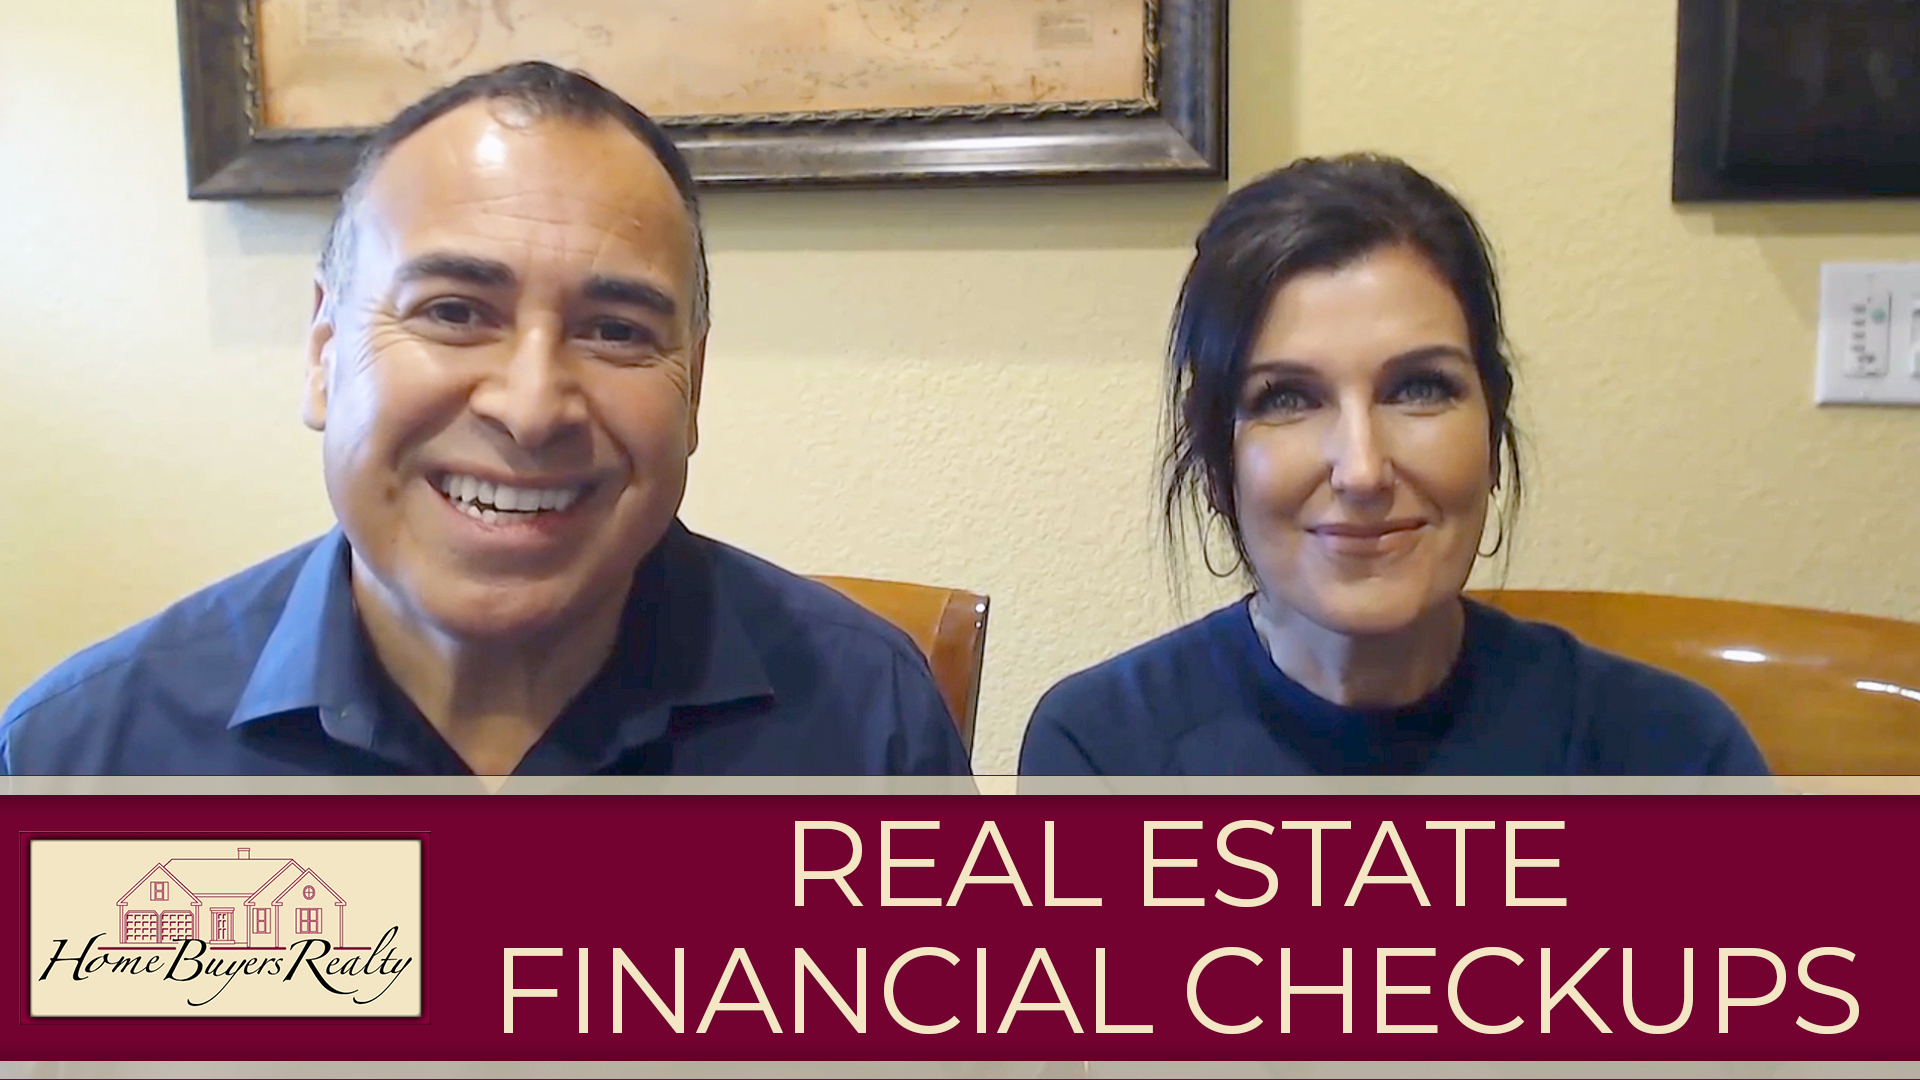 We're Offering Real Estate Financial Checkups